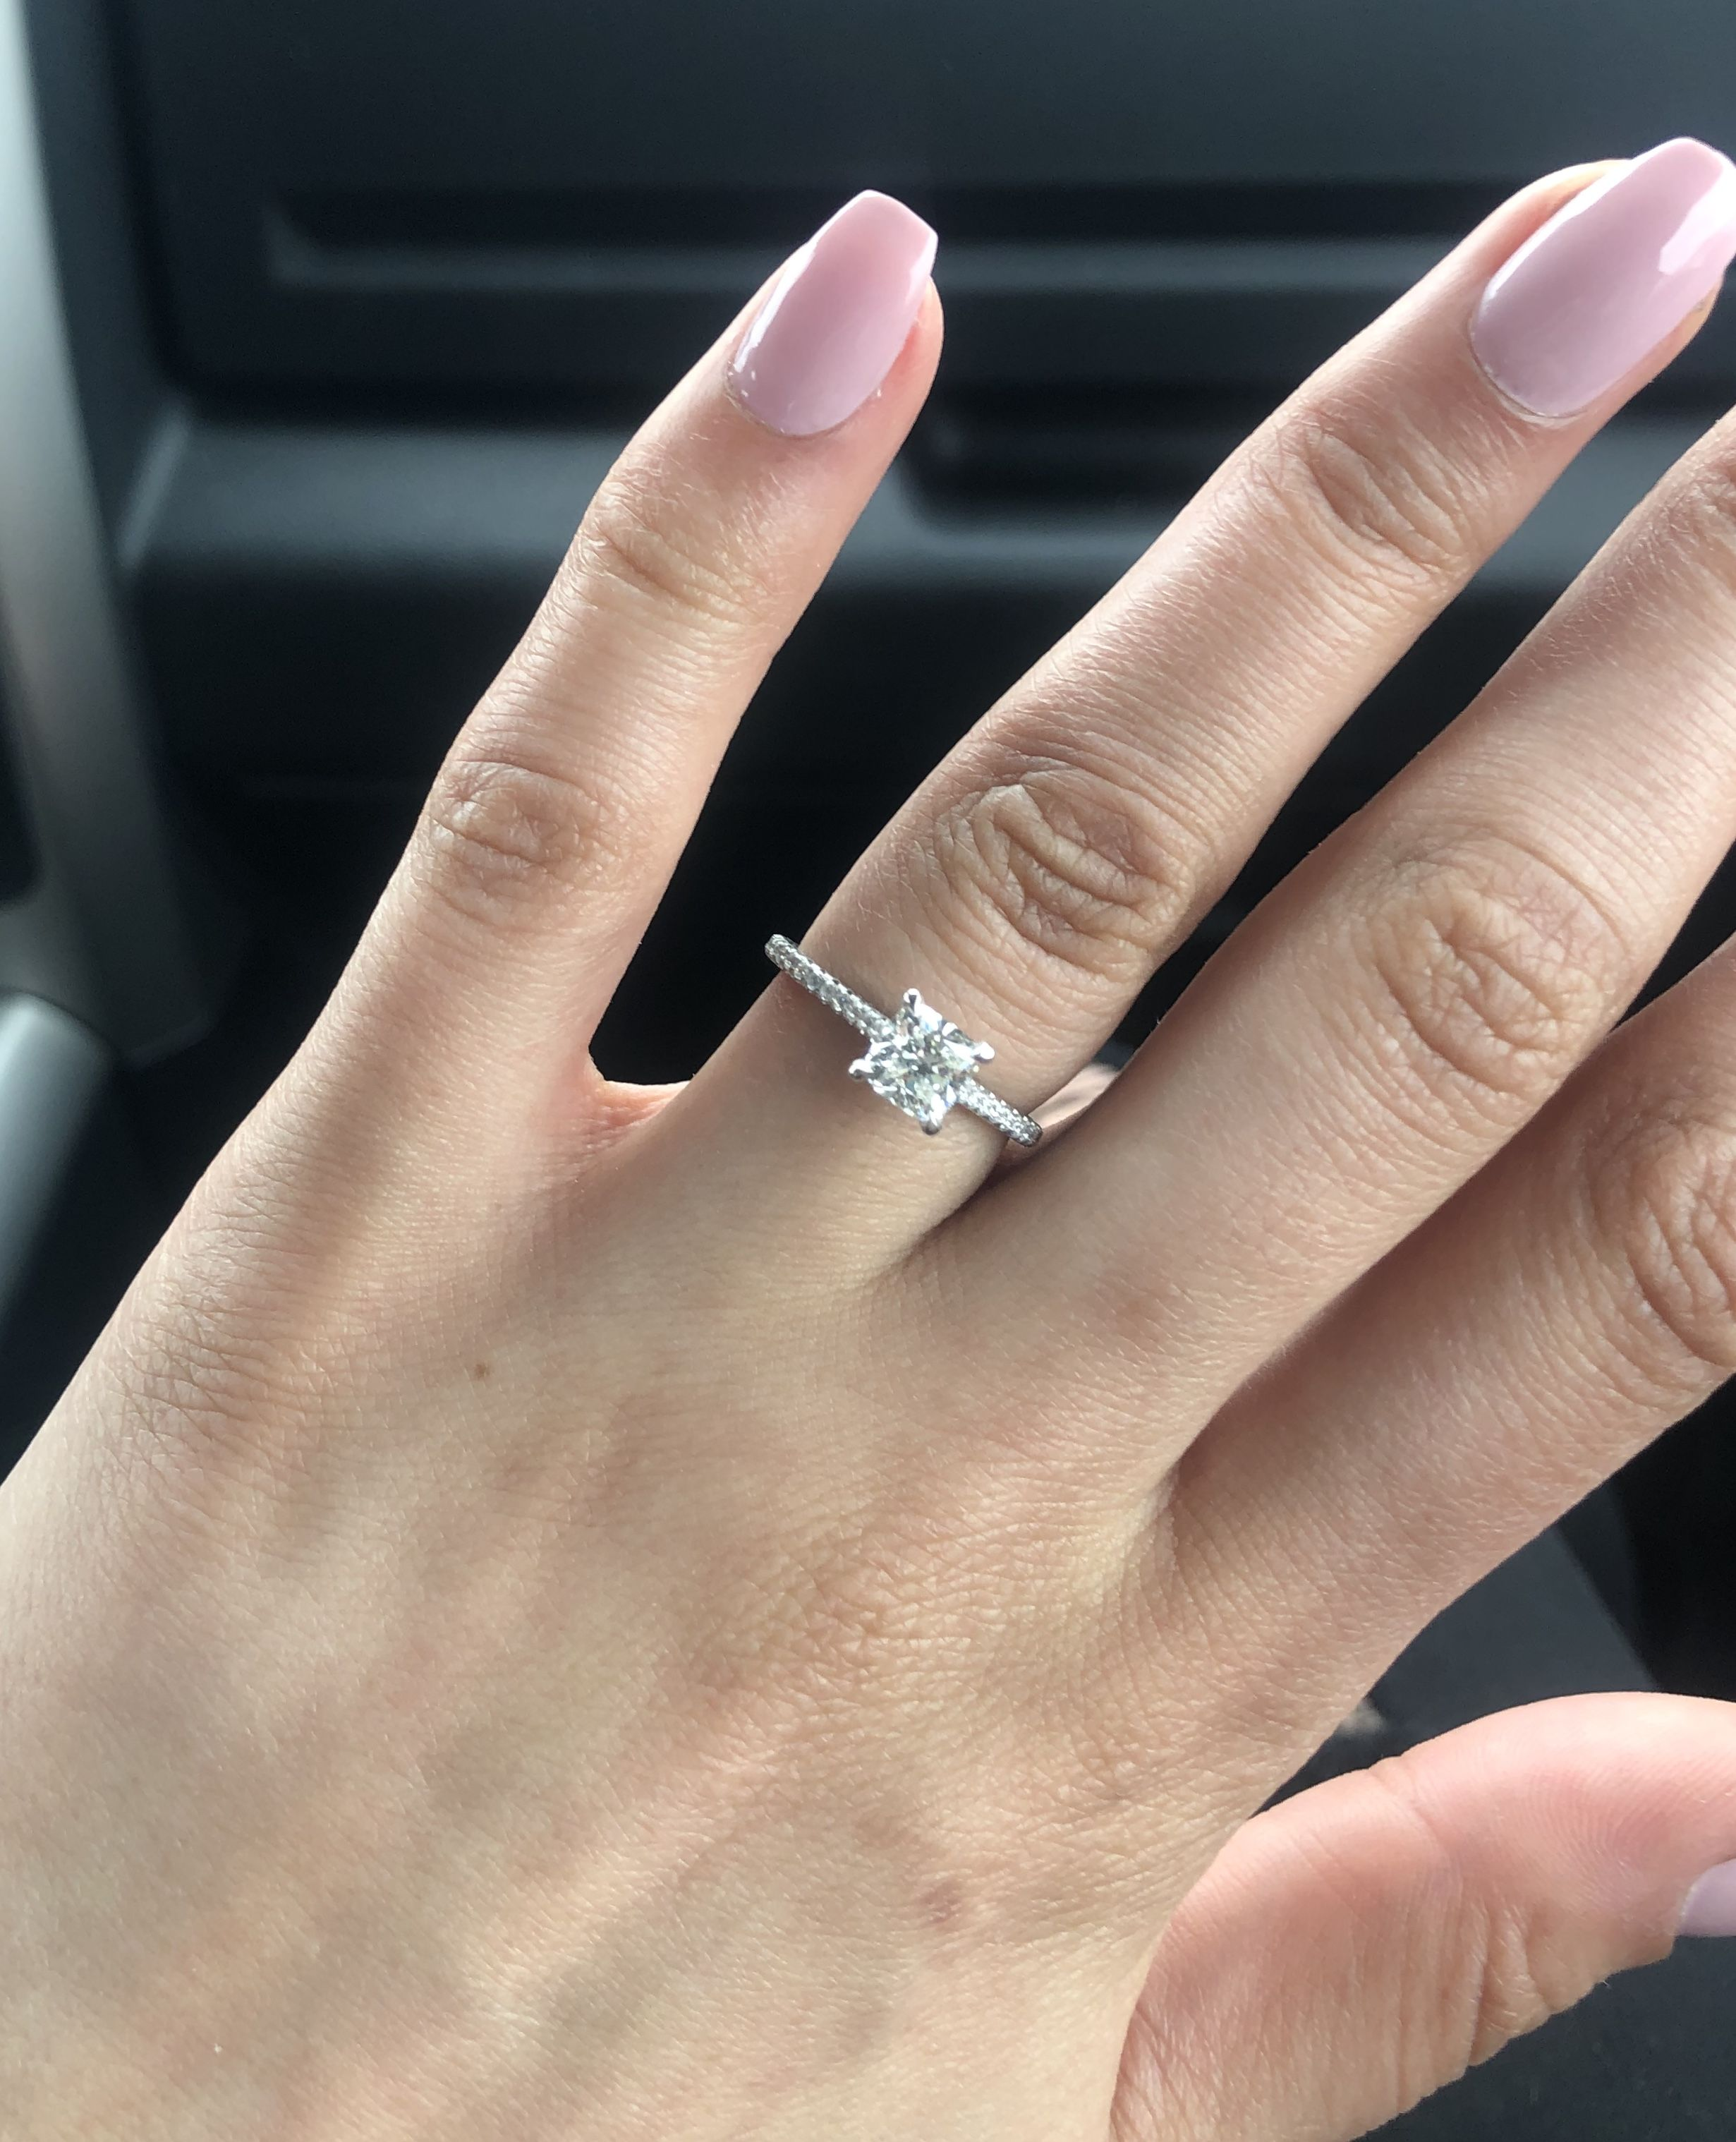 Size 4 Rings 2mm Vs 1 5mm Pictures Please Size 4 Rings Rings Diamond Bands